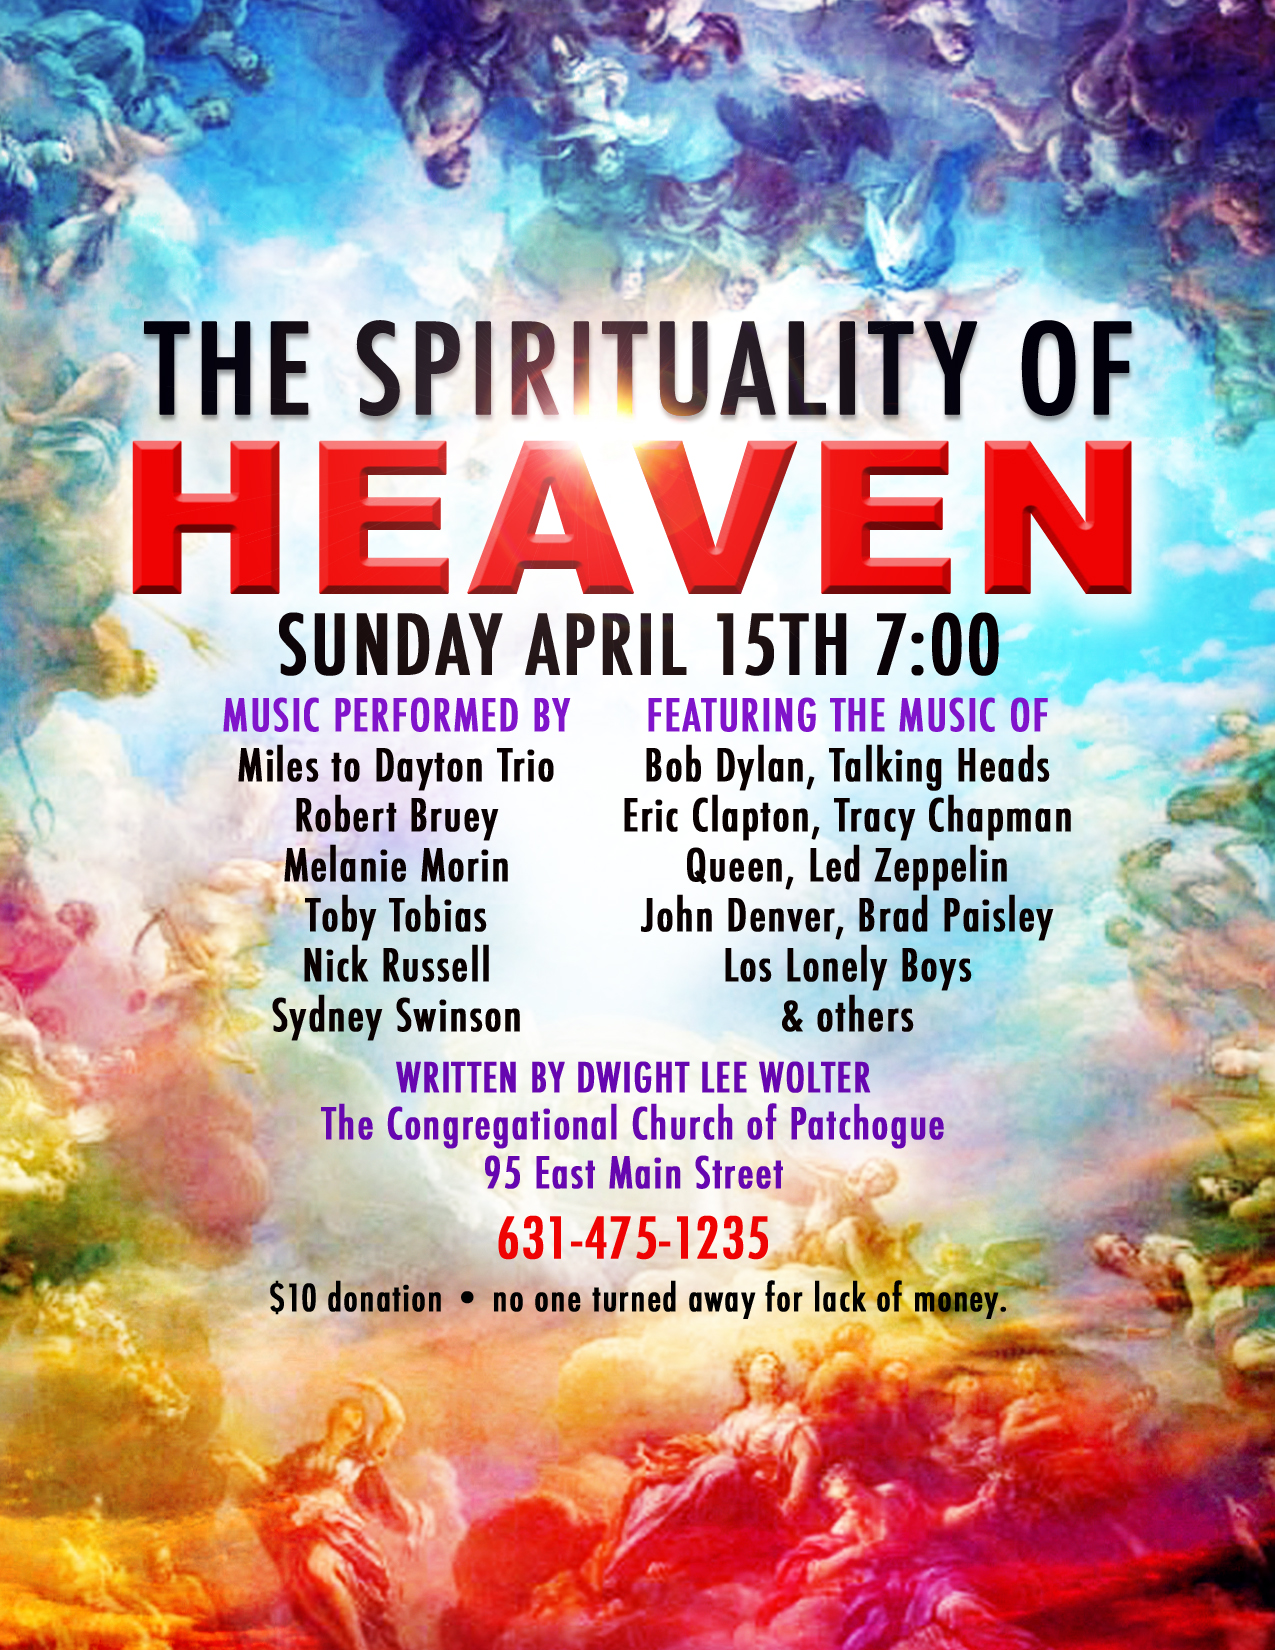 THE SPIRITUALITY OF HEAVEN @ Congregational Church of Patchogue | Patchogue | New York | United States